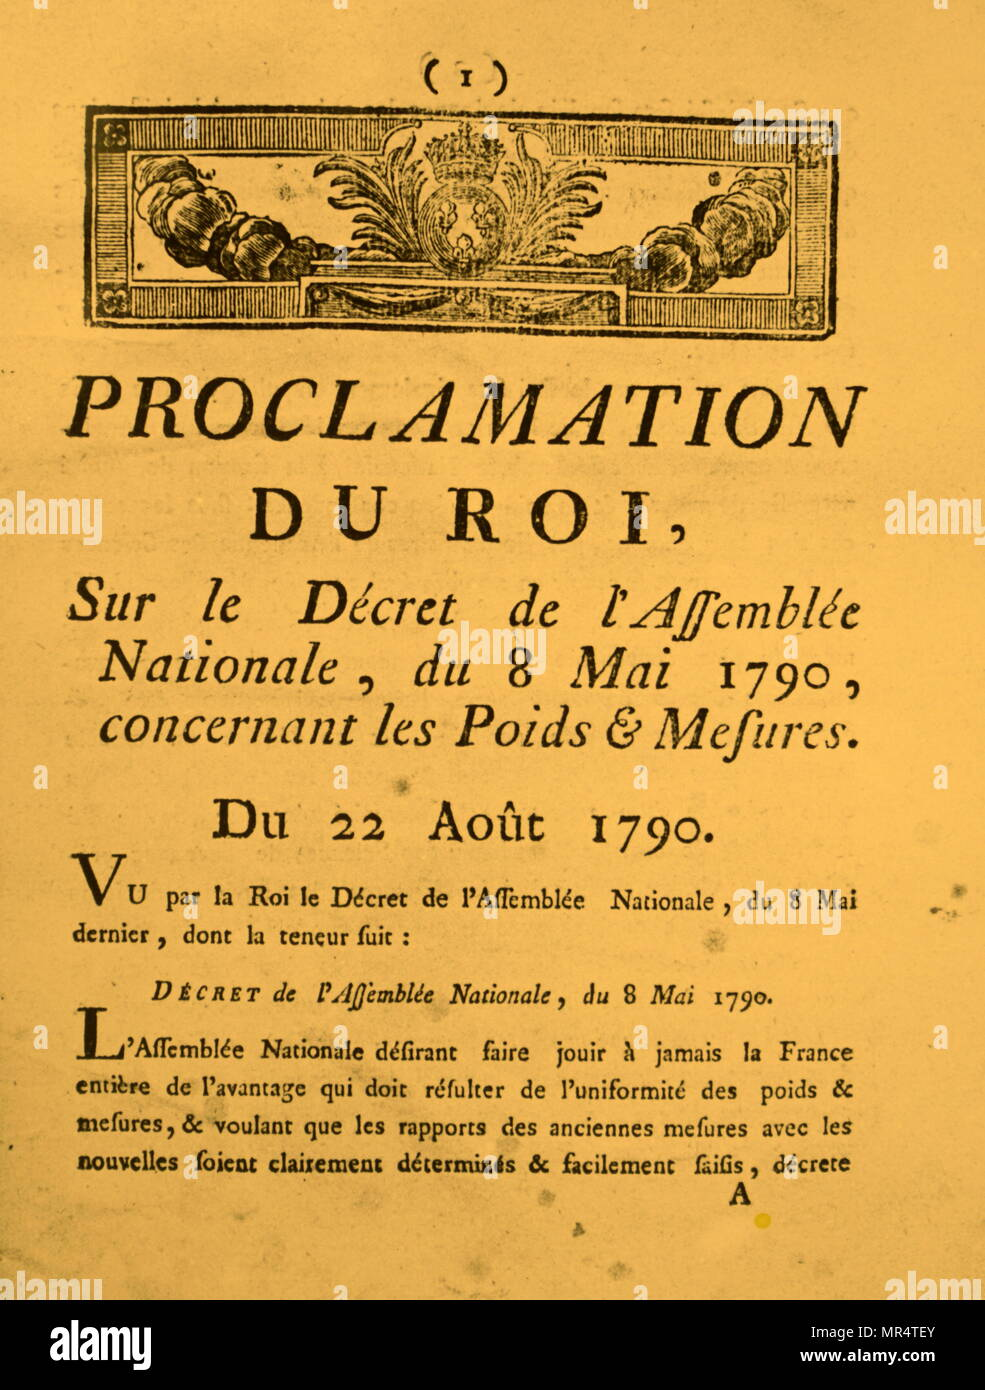 The royal proclamation on the standardisation of measurements throughout France. Dated 18th century - Stock Image